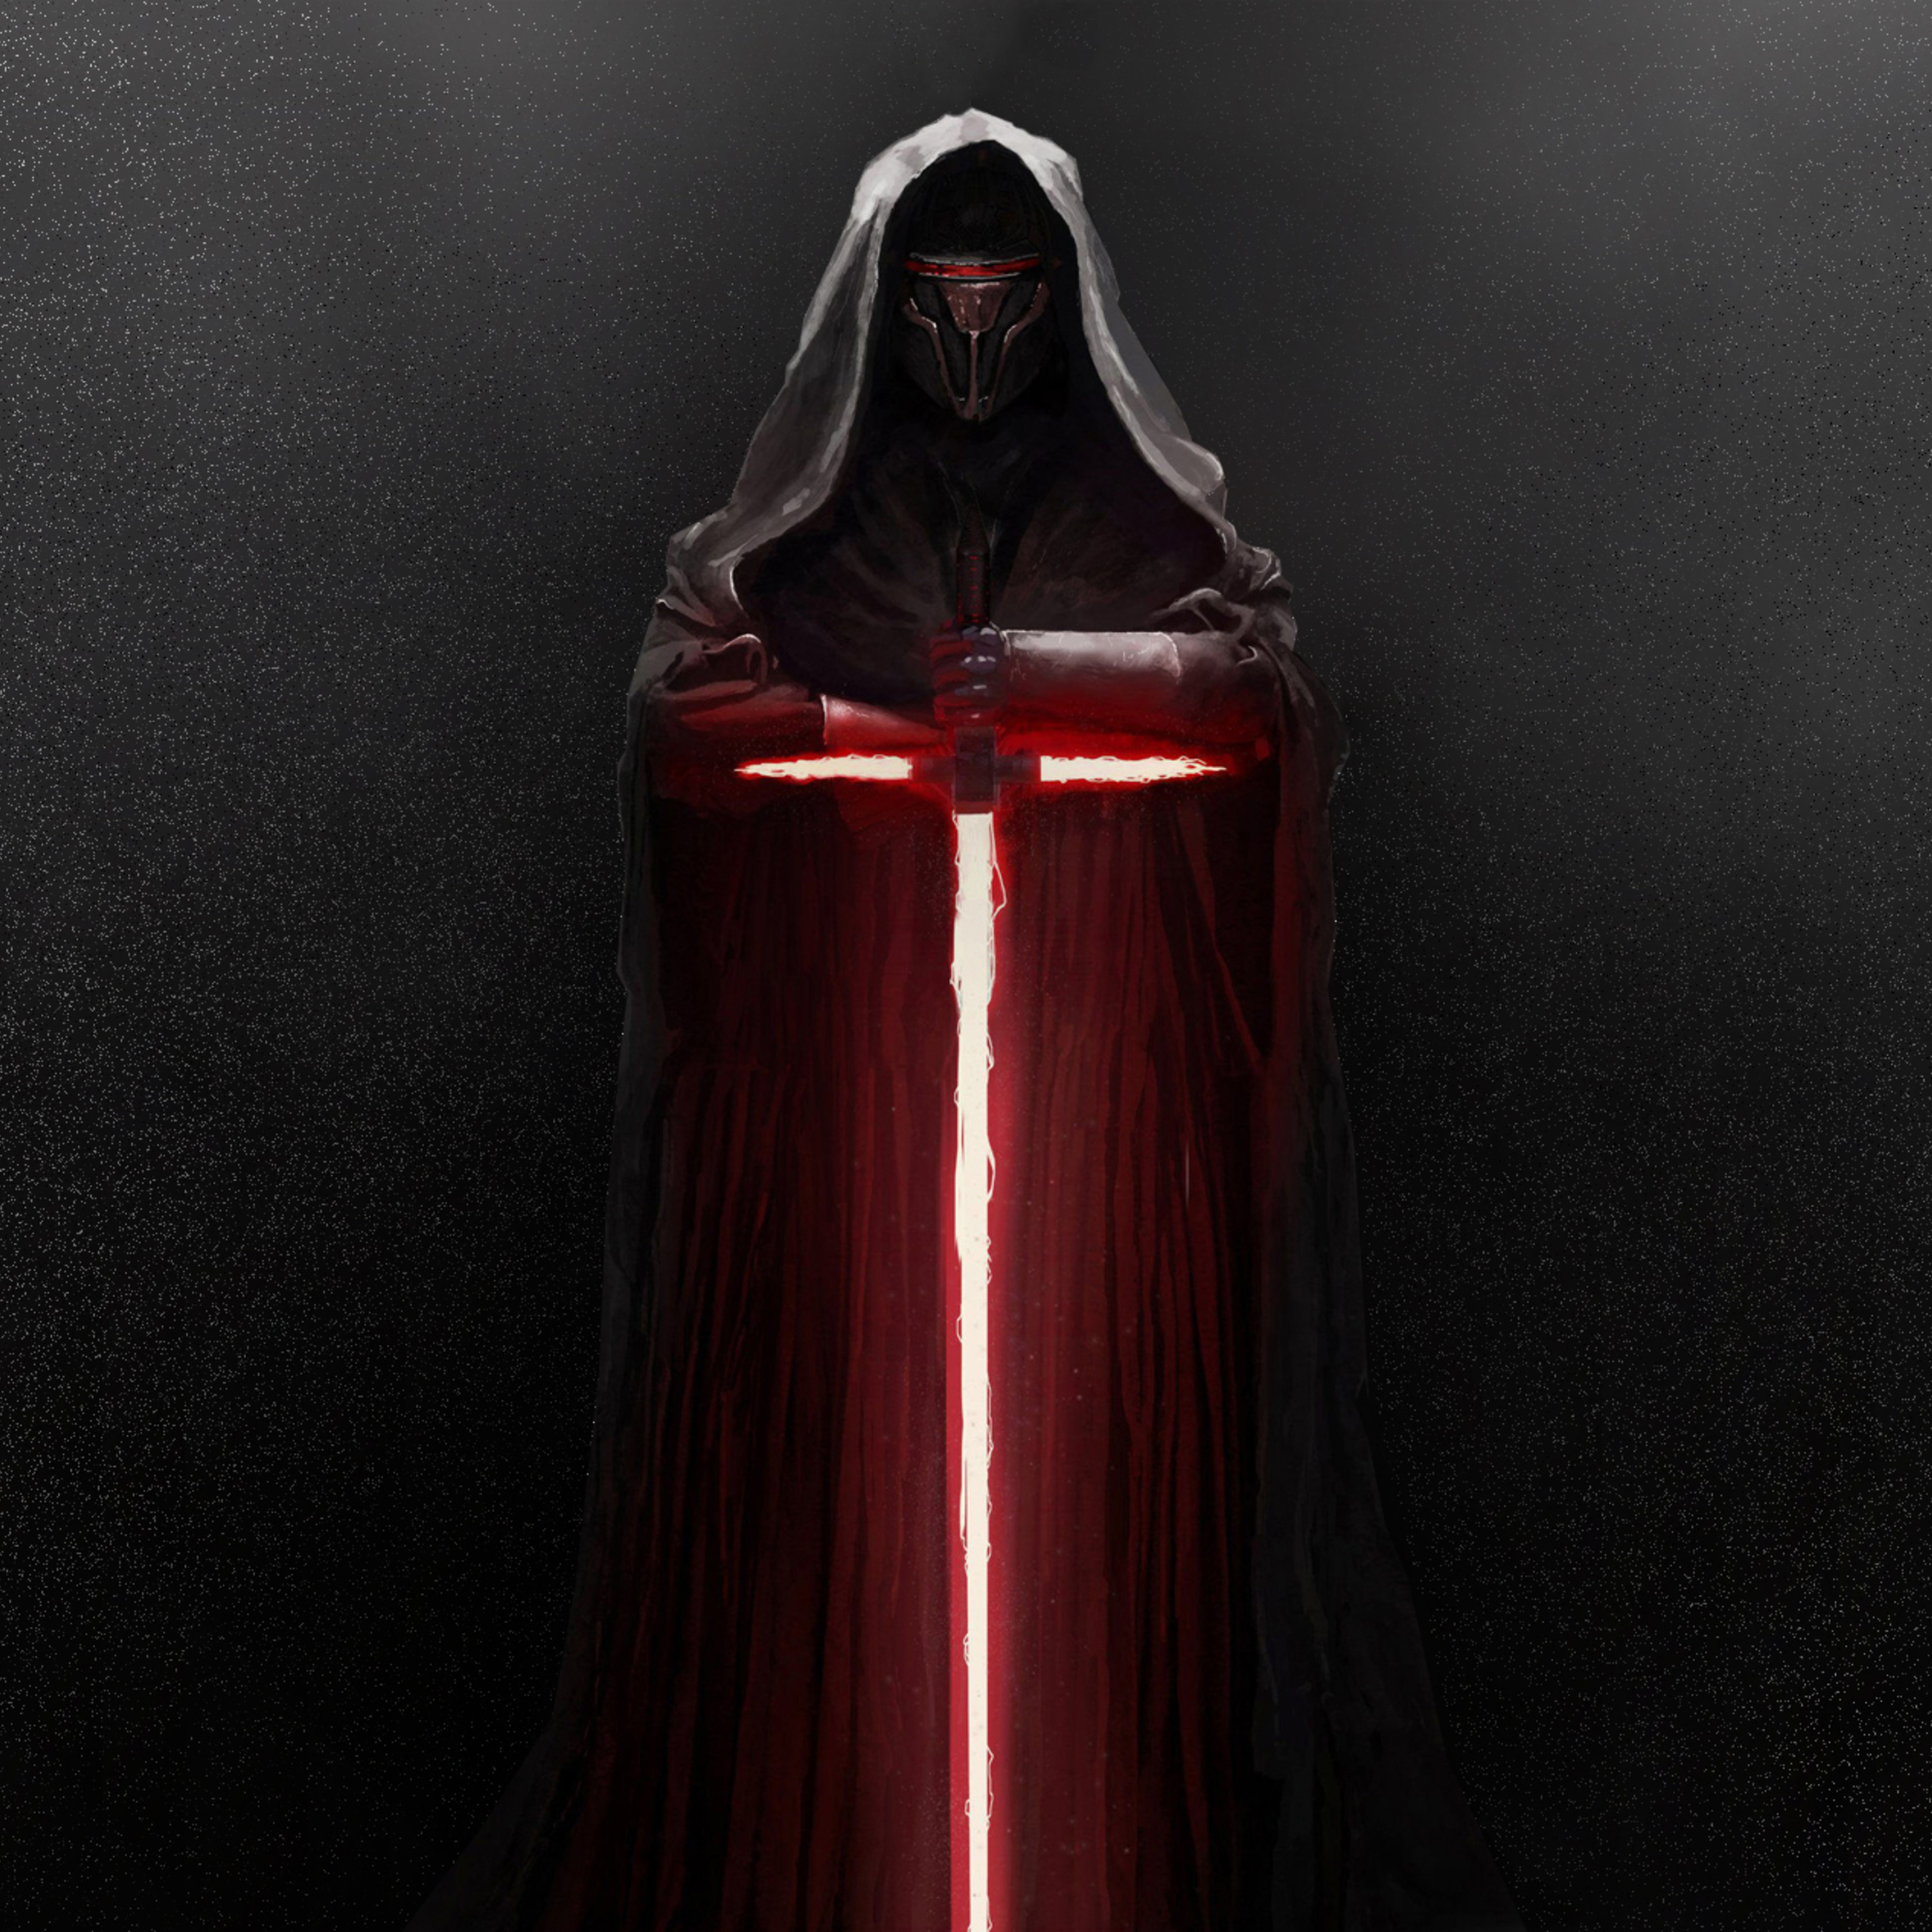 2932x2932 Kylo Ren Lightsaber Star Wars Ipad Pro Retina Display Hd 4k Wallpapers Images Backgrounds Photos And Pictures